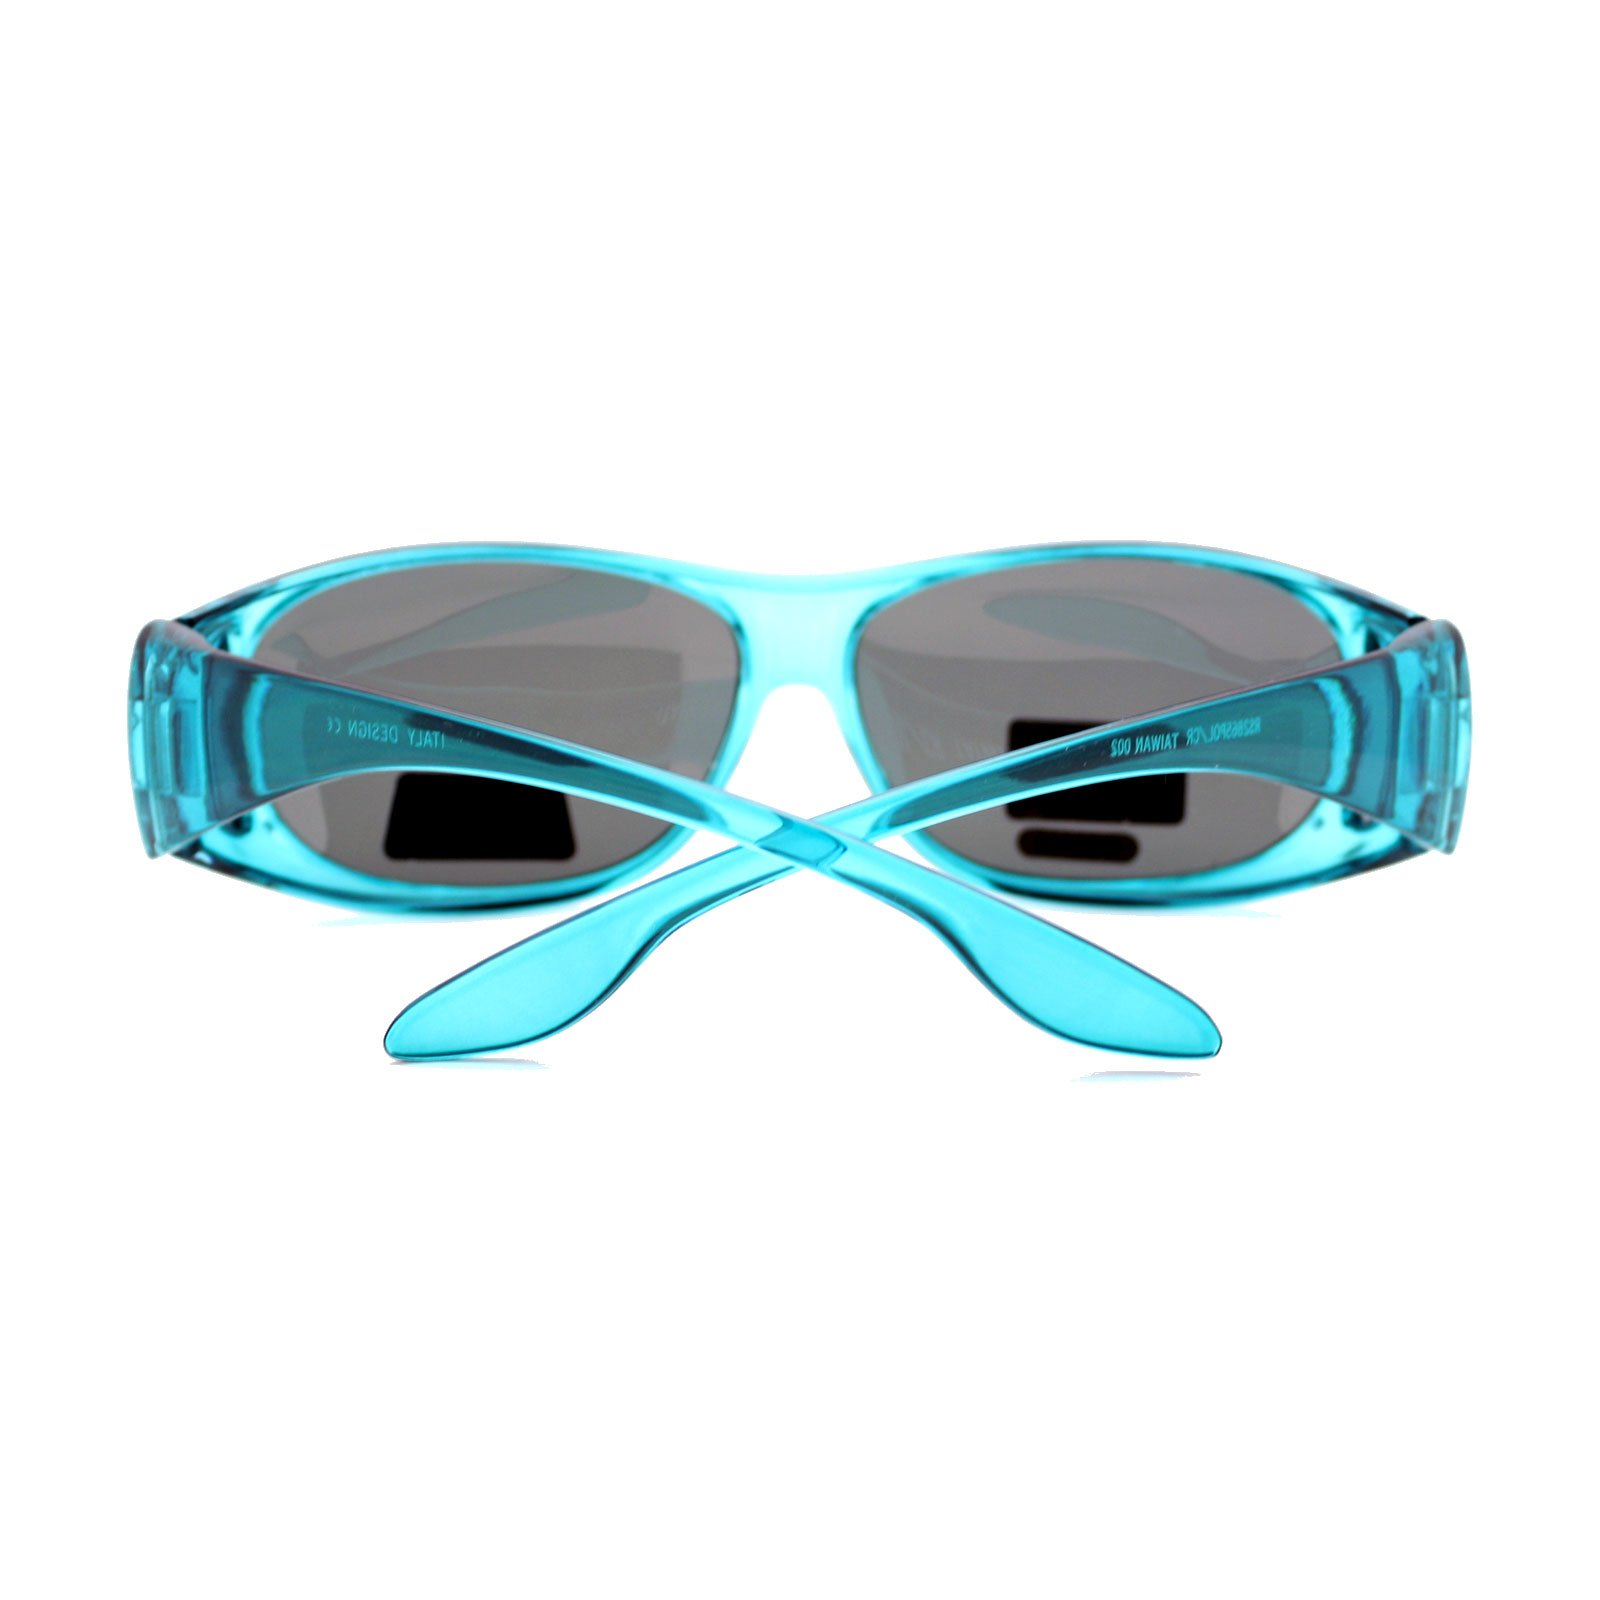 Womens Polarized Fit Over Glasses Rhinestone Sunglasses Oval Rectangular Teal by PASTL (Image #3)